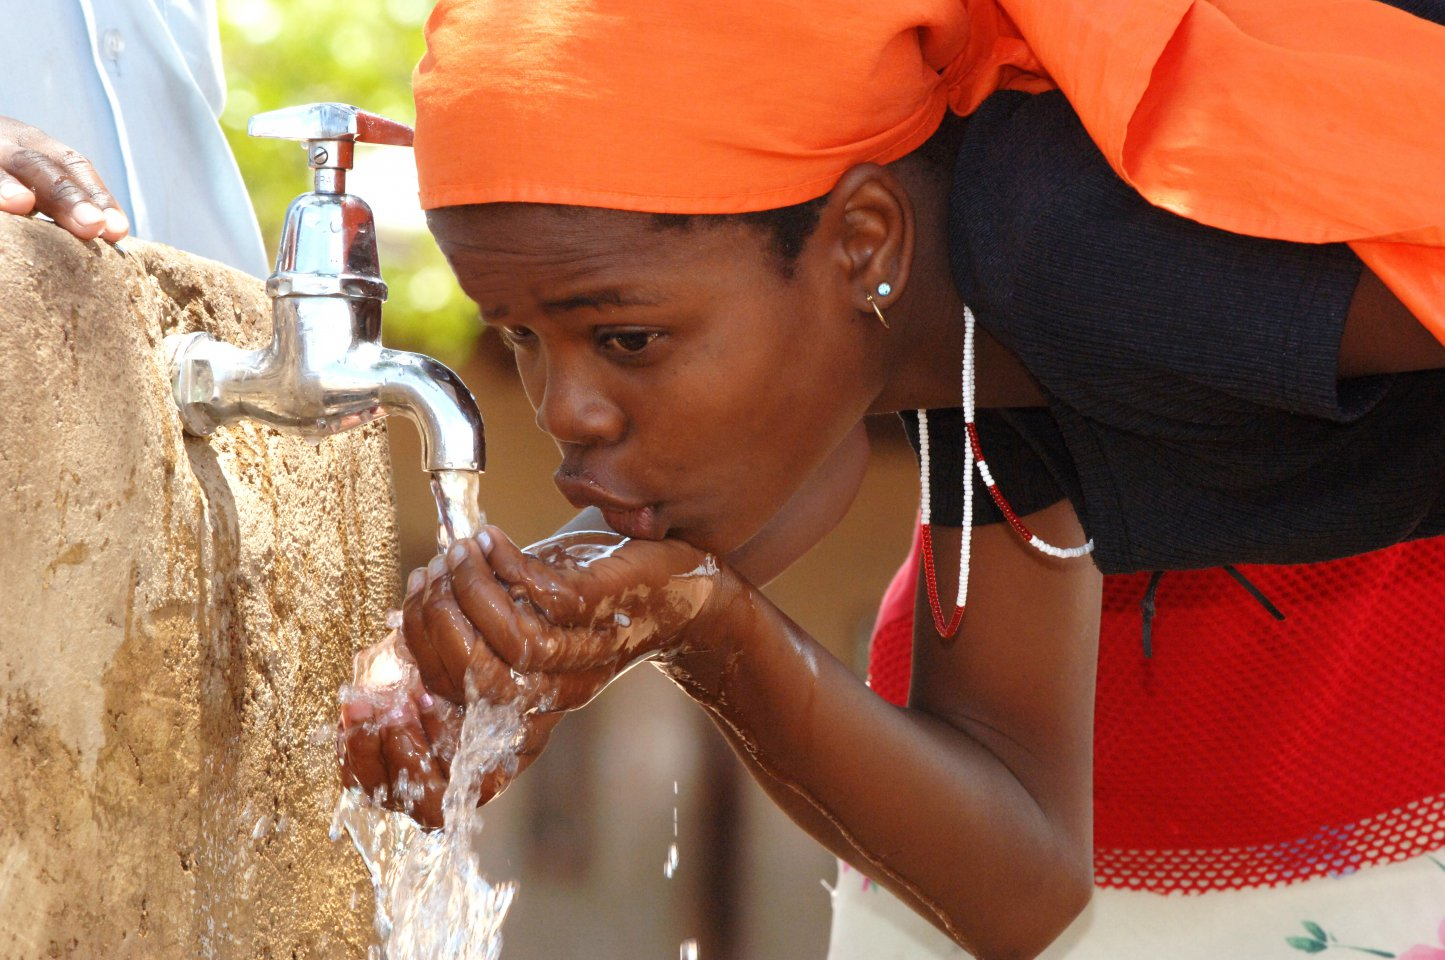 https://www.waterforlife.nl/files/visuals/_1920x960_fit_center-center_85_none/Ethiopië.jpg